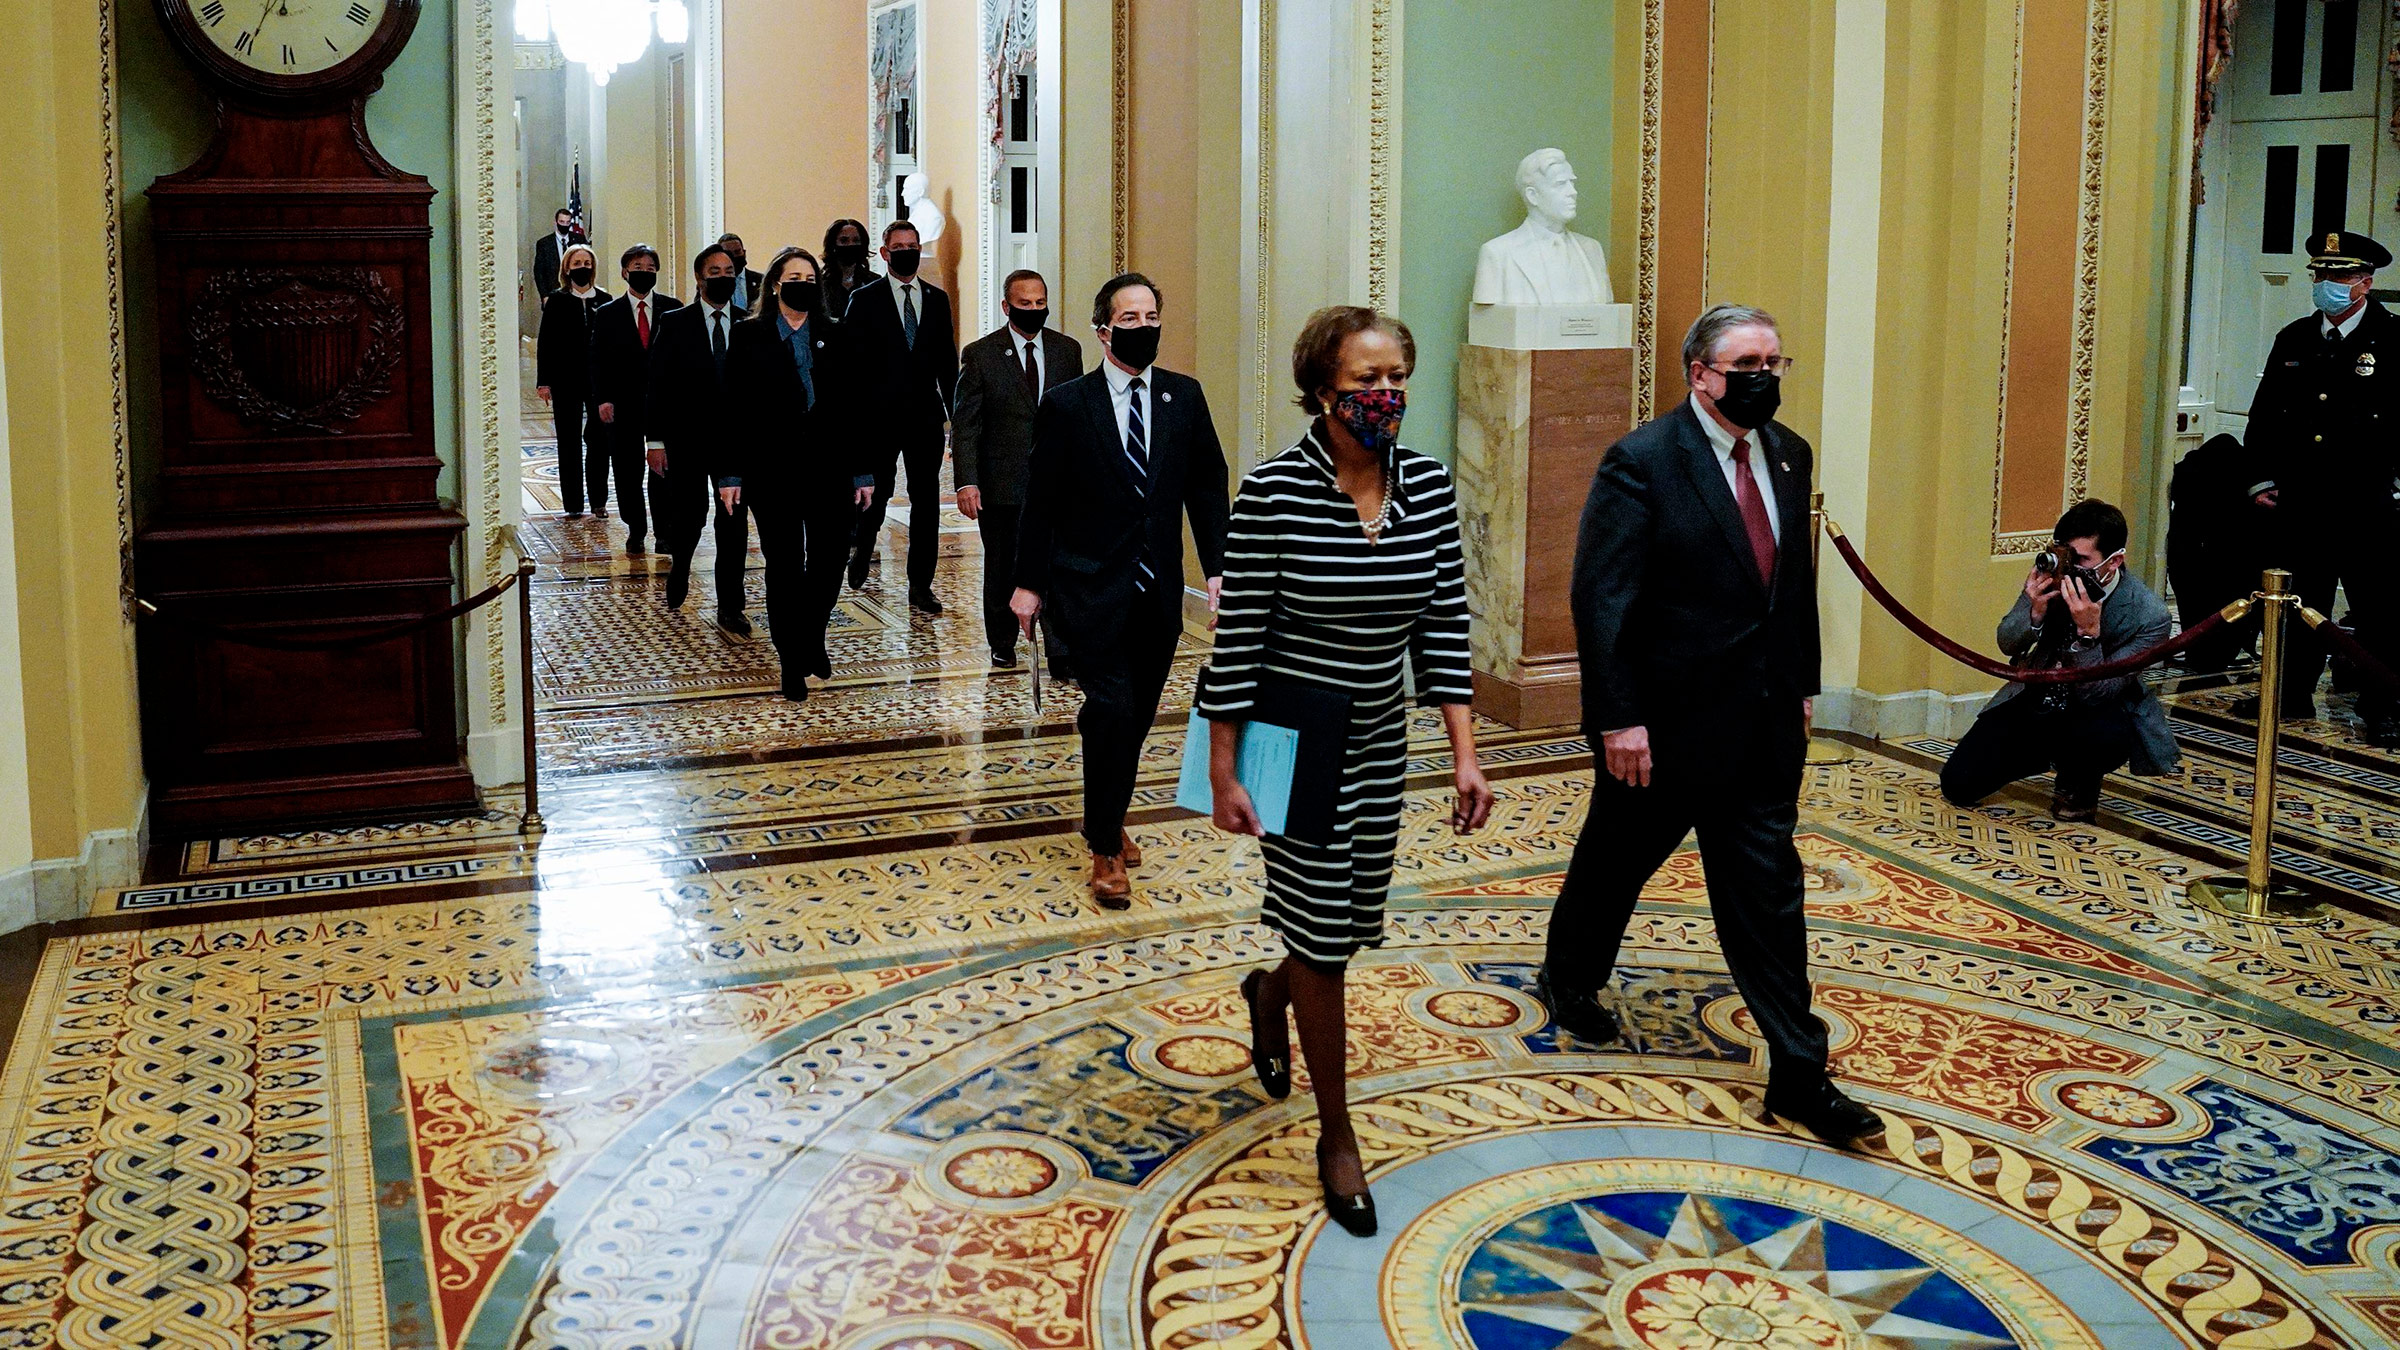 House impeachment managers are lead through the Capitol to deliver the article of impeachment against former President Donald Trump to the Senate floor on January 25, in Washington, DC.